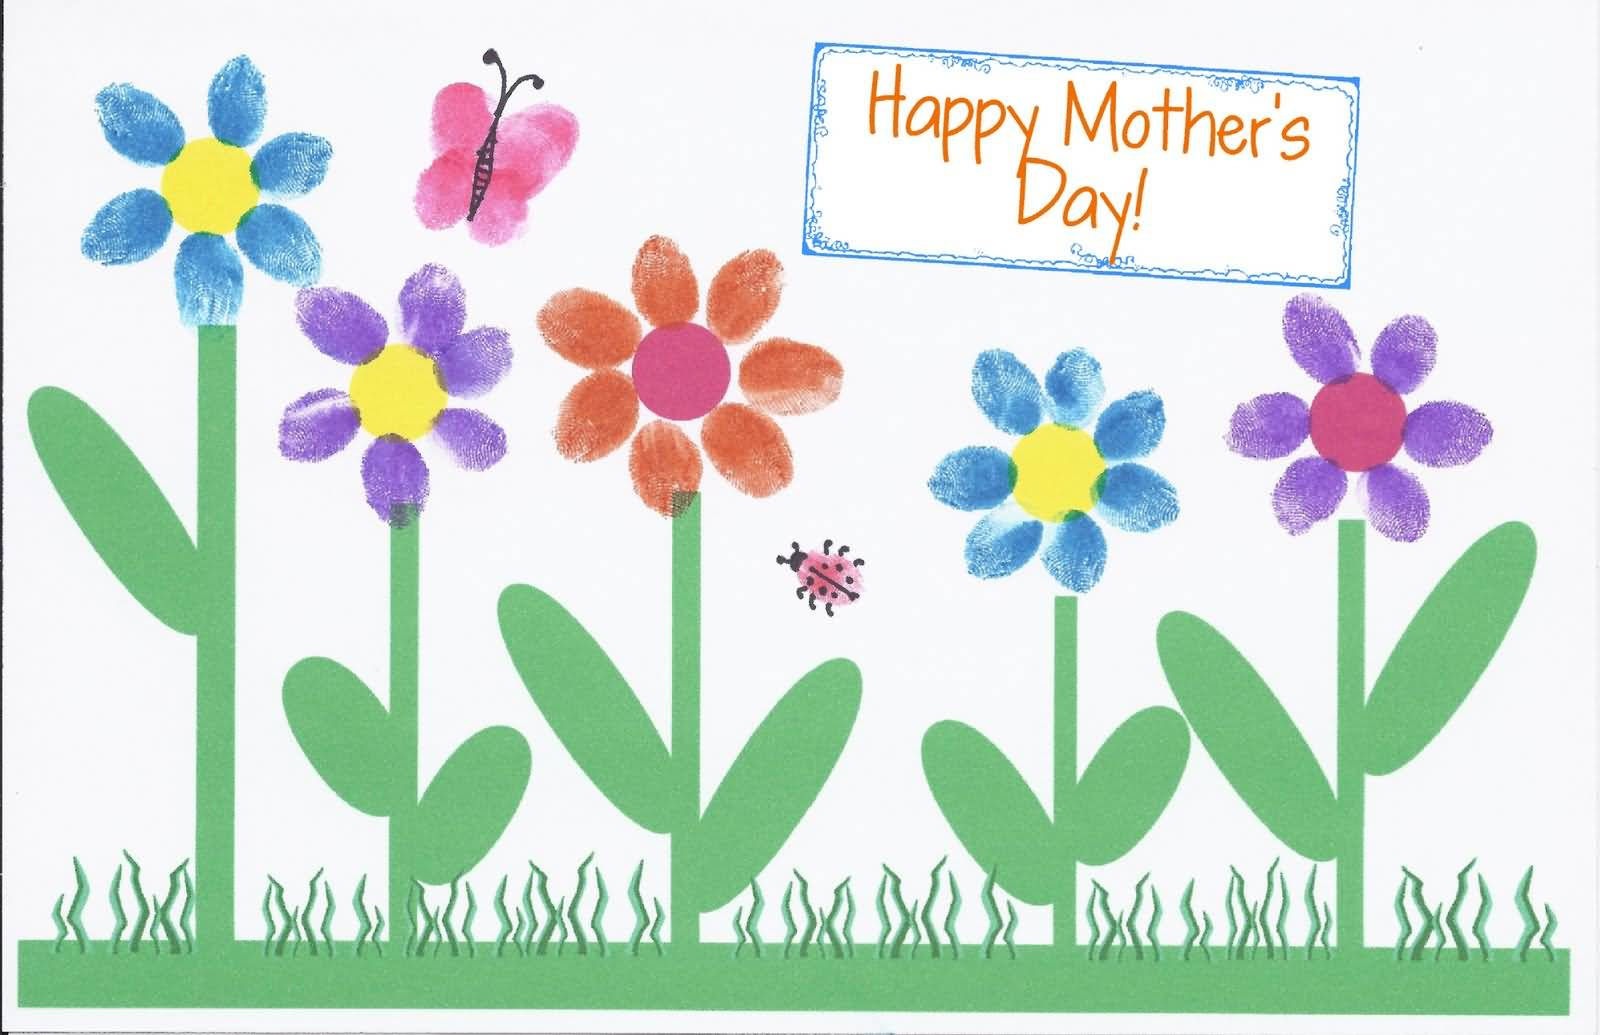 Happy Mothers Day 2014 Card Ideas: 35+ Most Adorable Mother's Day 2017 Greeting Pictures